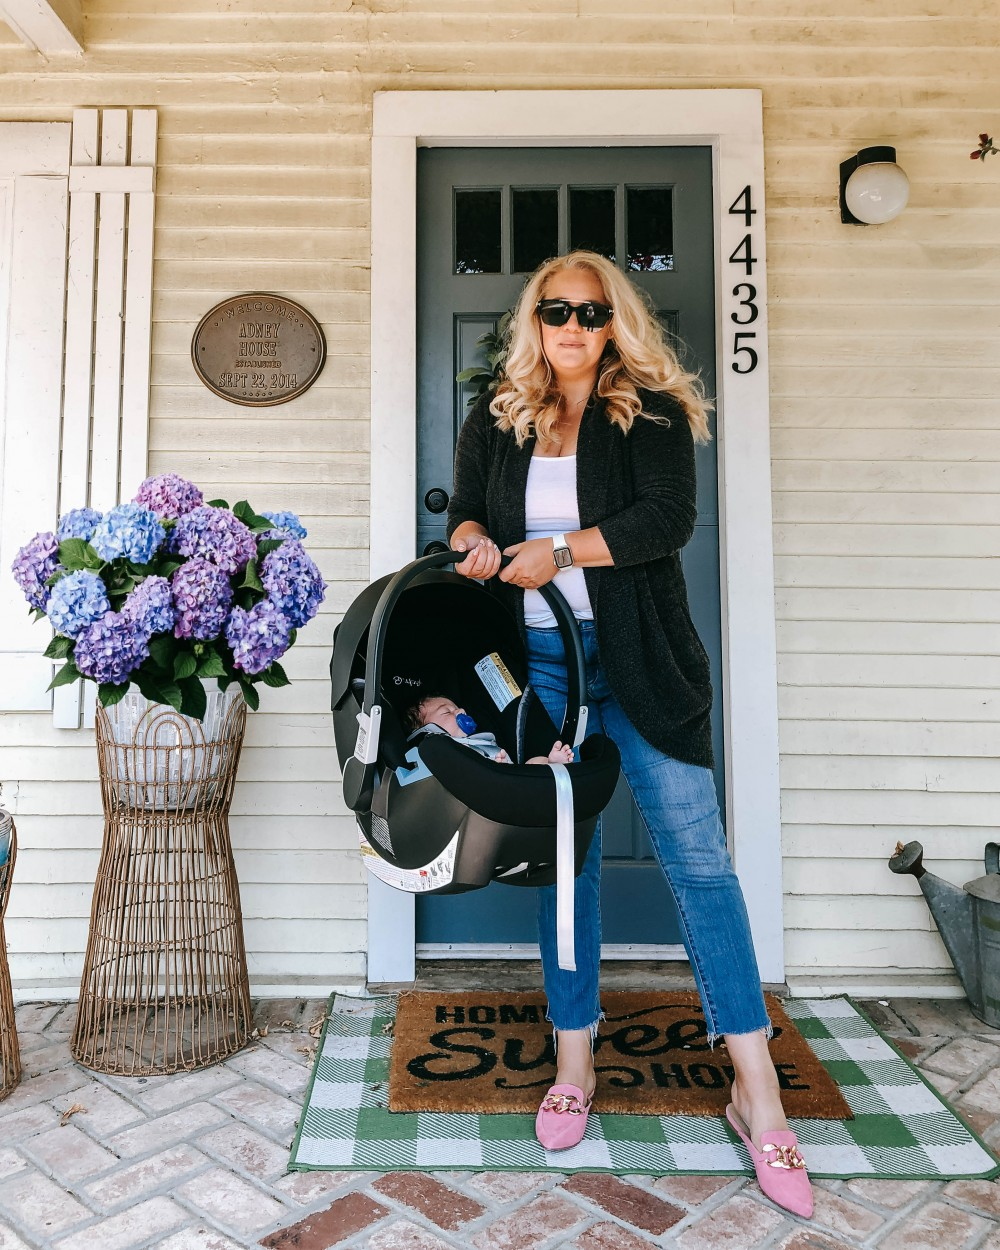 Cybex Aton 2 SensorSafe Car Seat Review. Sharing the safety features of Cooper's infant car seat and reasons why I decided to go with this on. Click on over to the blog post to give it a read.